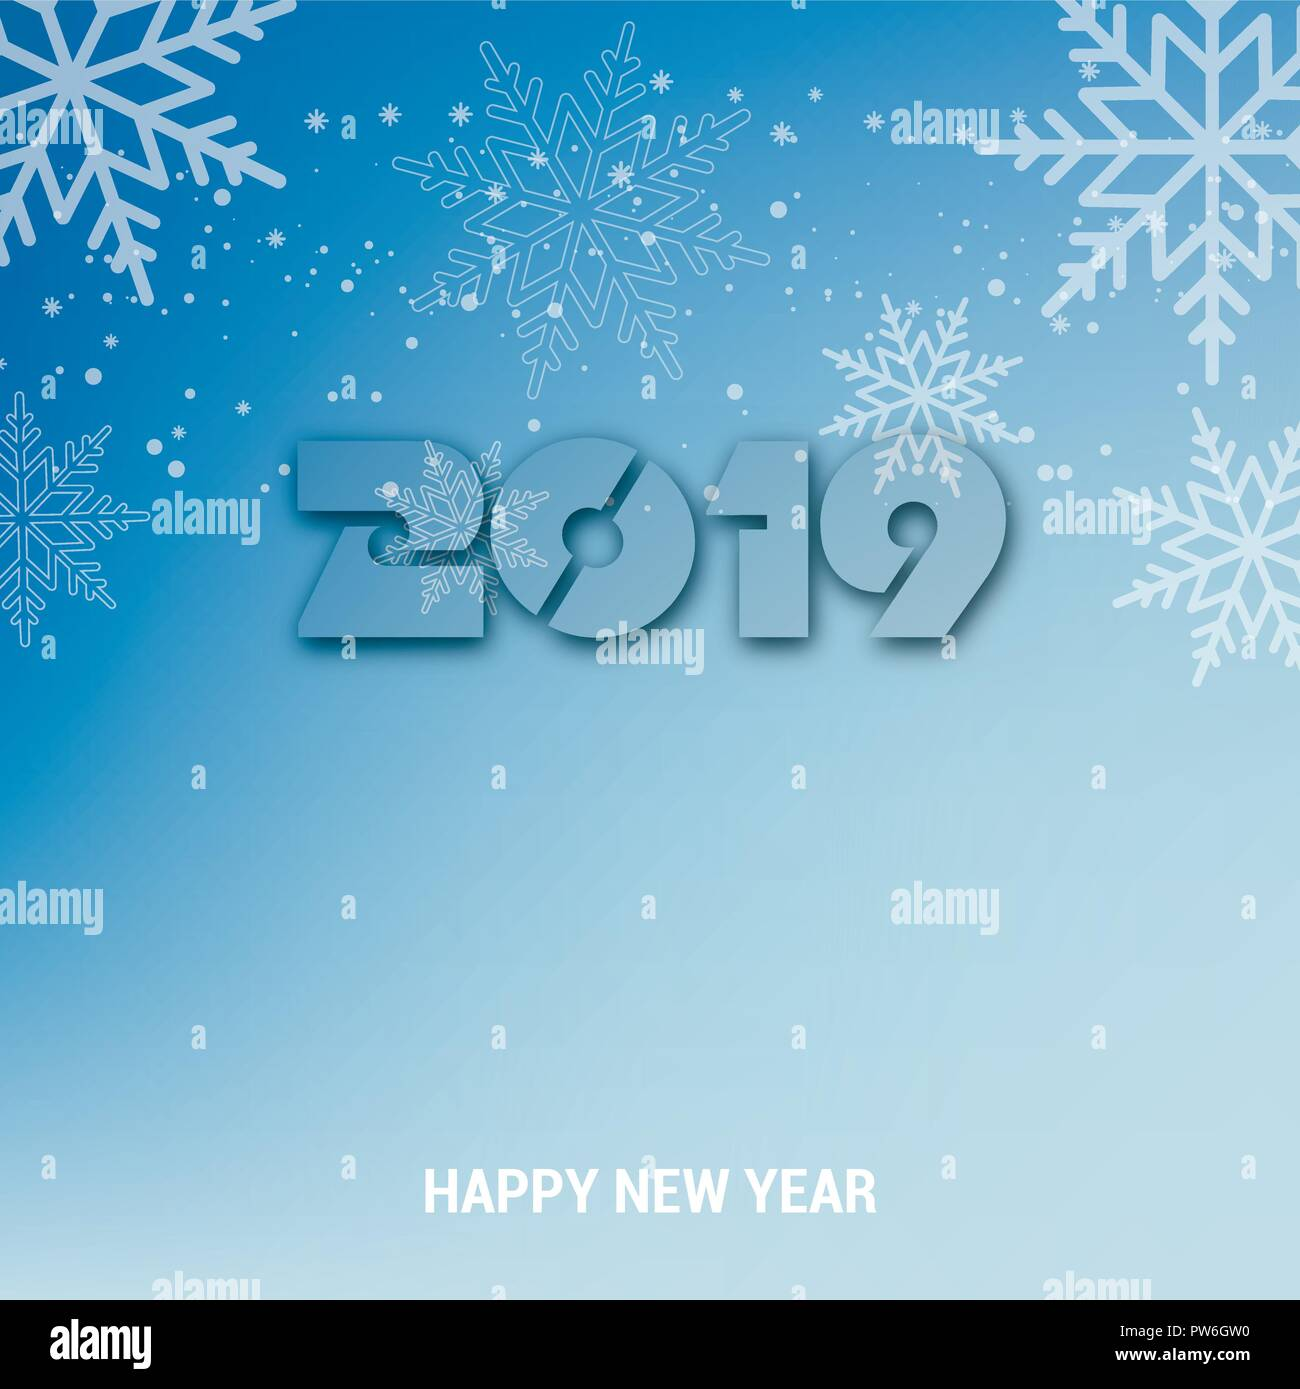 happy new year background with falling snow flakes vector